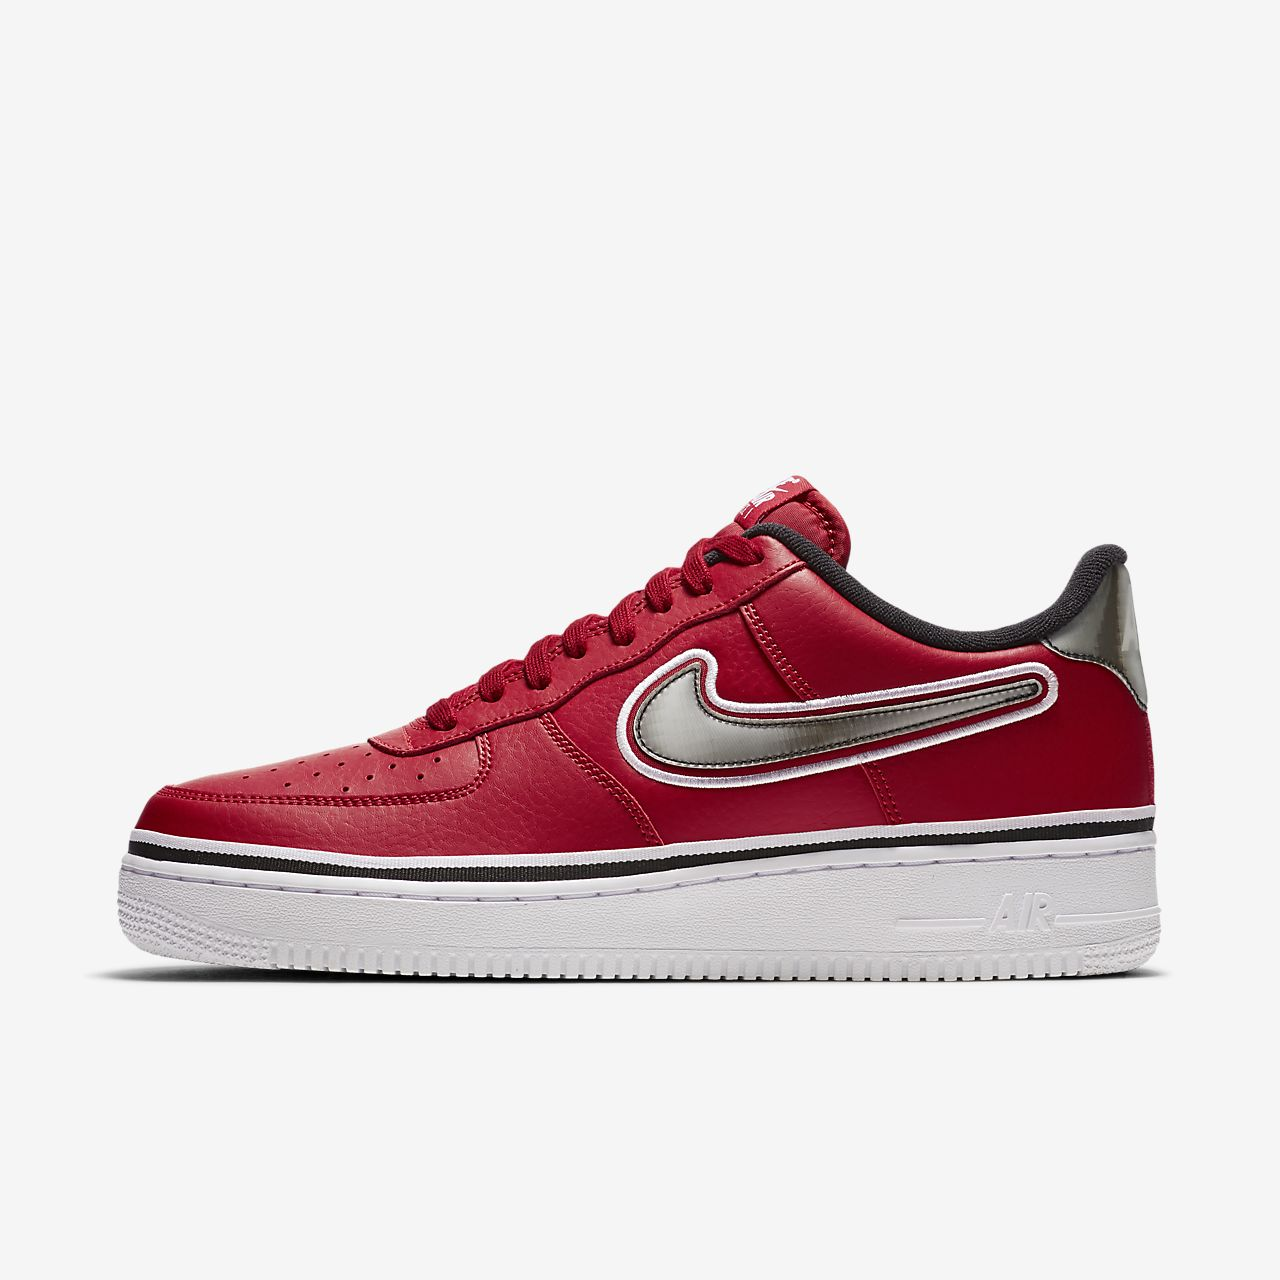 sports shoes ae40b 17753 ... Nike Air Force 1 NBA Low (Chicago Bulls) Zapatillas - Hombre